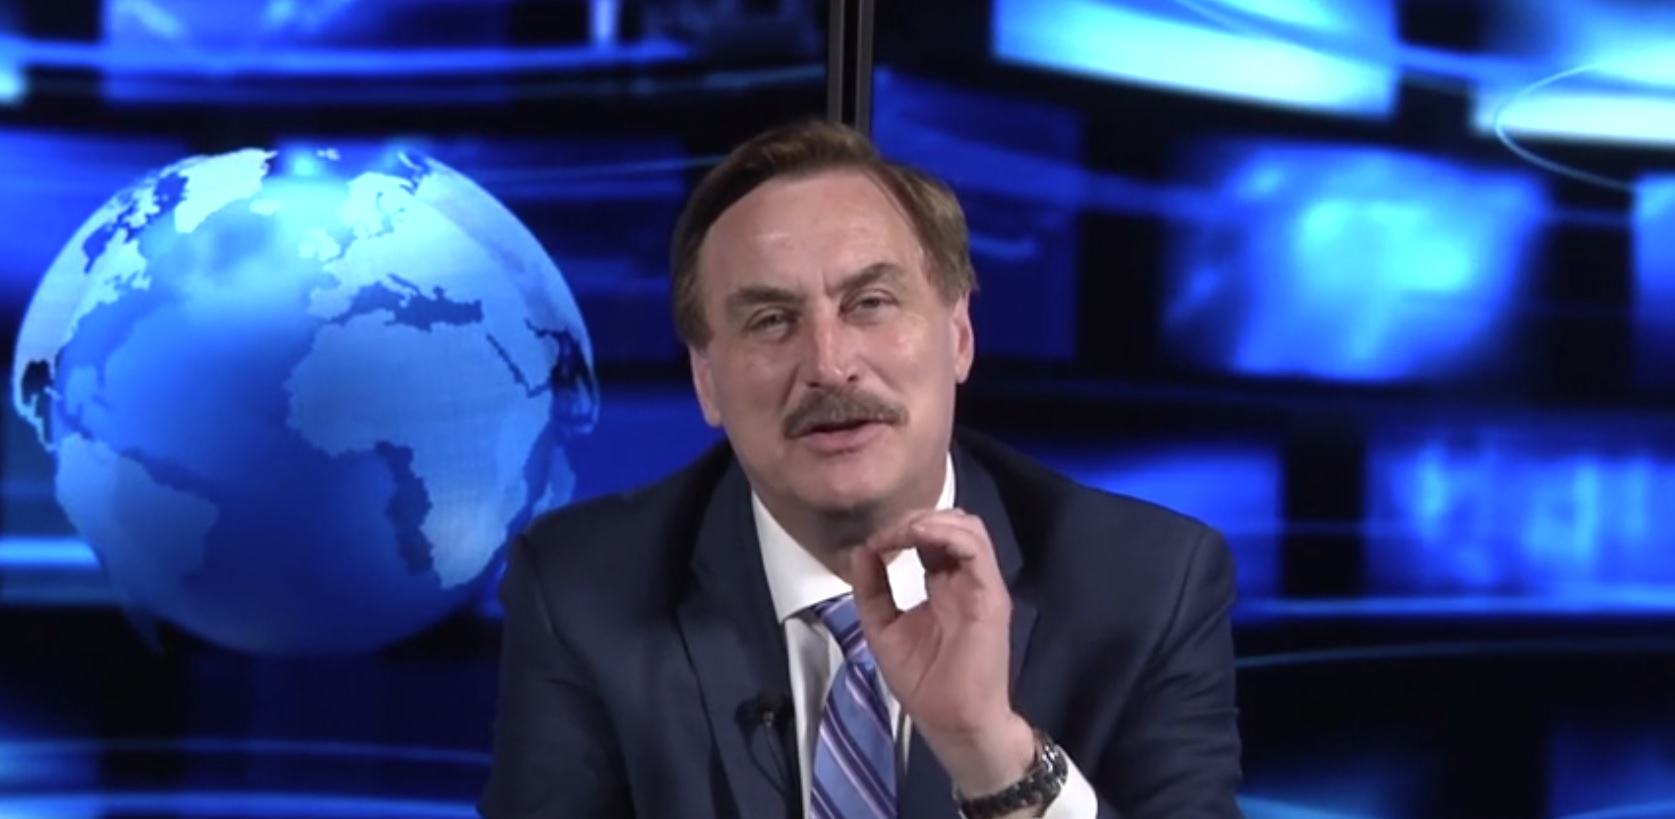 Mike Lindell: Absolute Proof: Exposing Election Fraud and the Theft of America